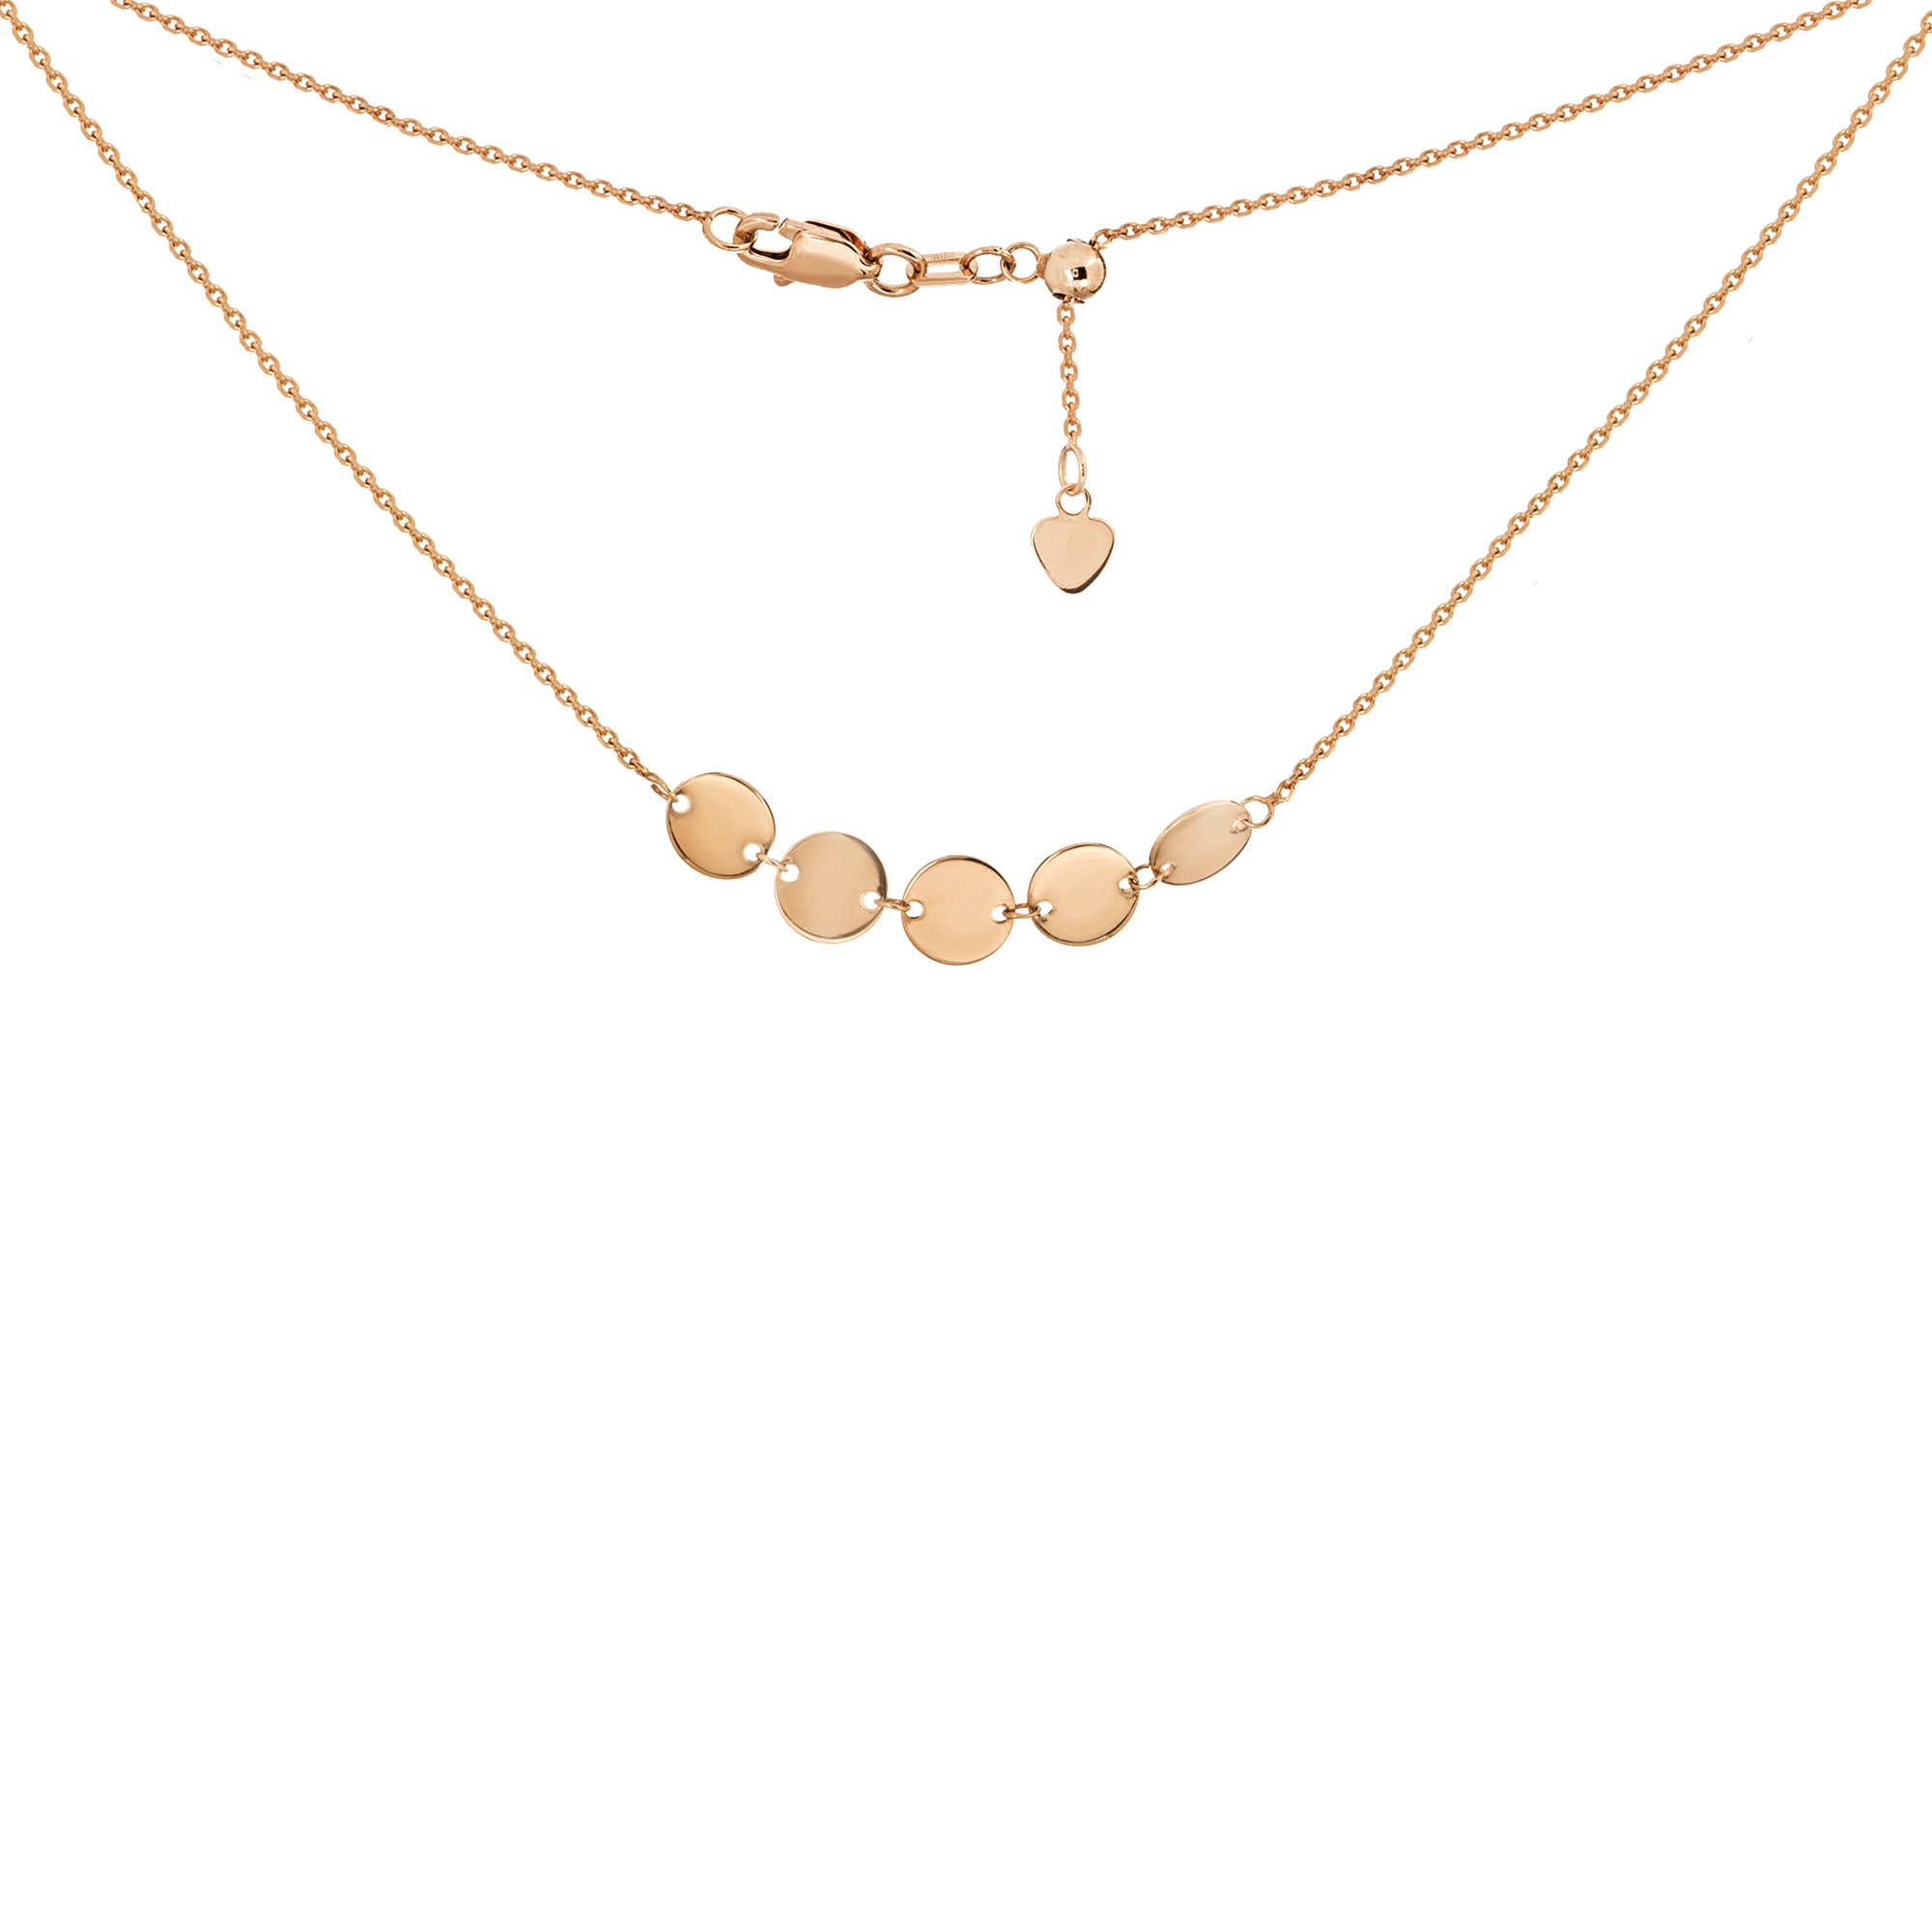 9fc912c0d5a523 Choker Necklace with Disks Chain 14k Rose Gold - Adjustable | eBay